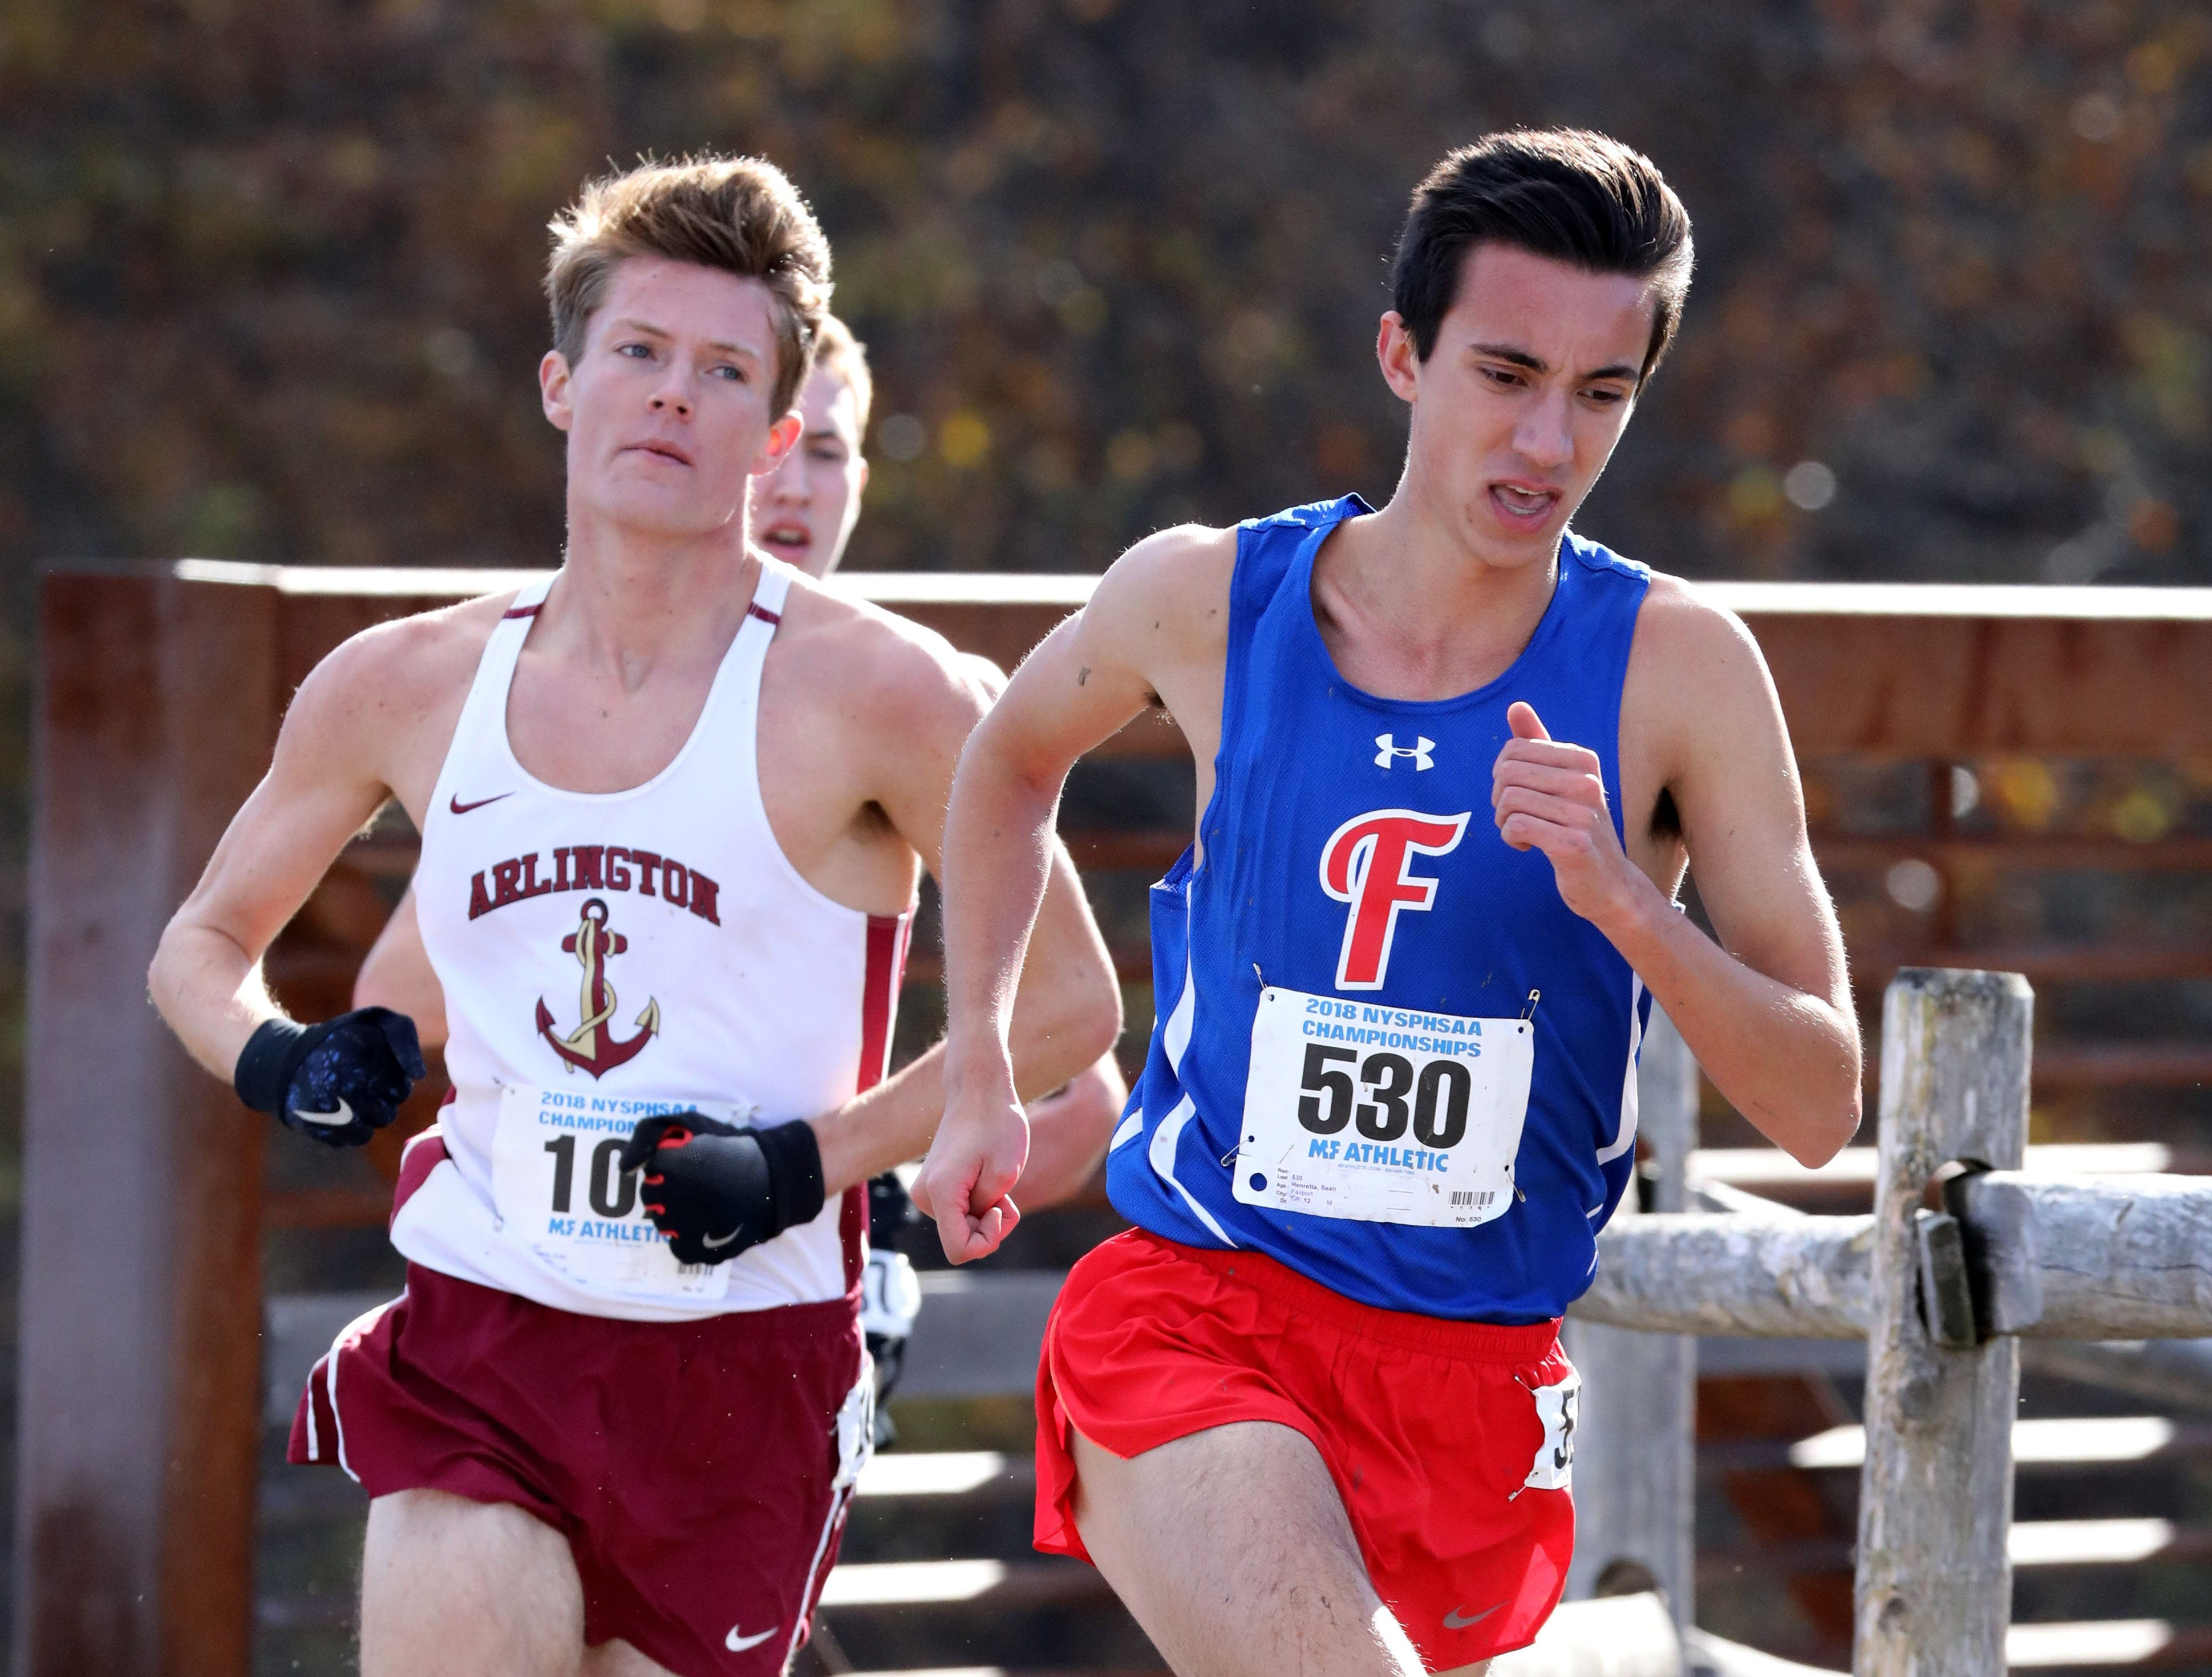 Sean Henretta from Fairport, runs the boys Class A race during the 2018 NYSPHSAA Cross Country Championships at Sunken Meadow State Park in Kings Park on Nov. 10, 2018.